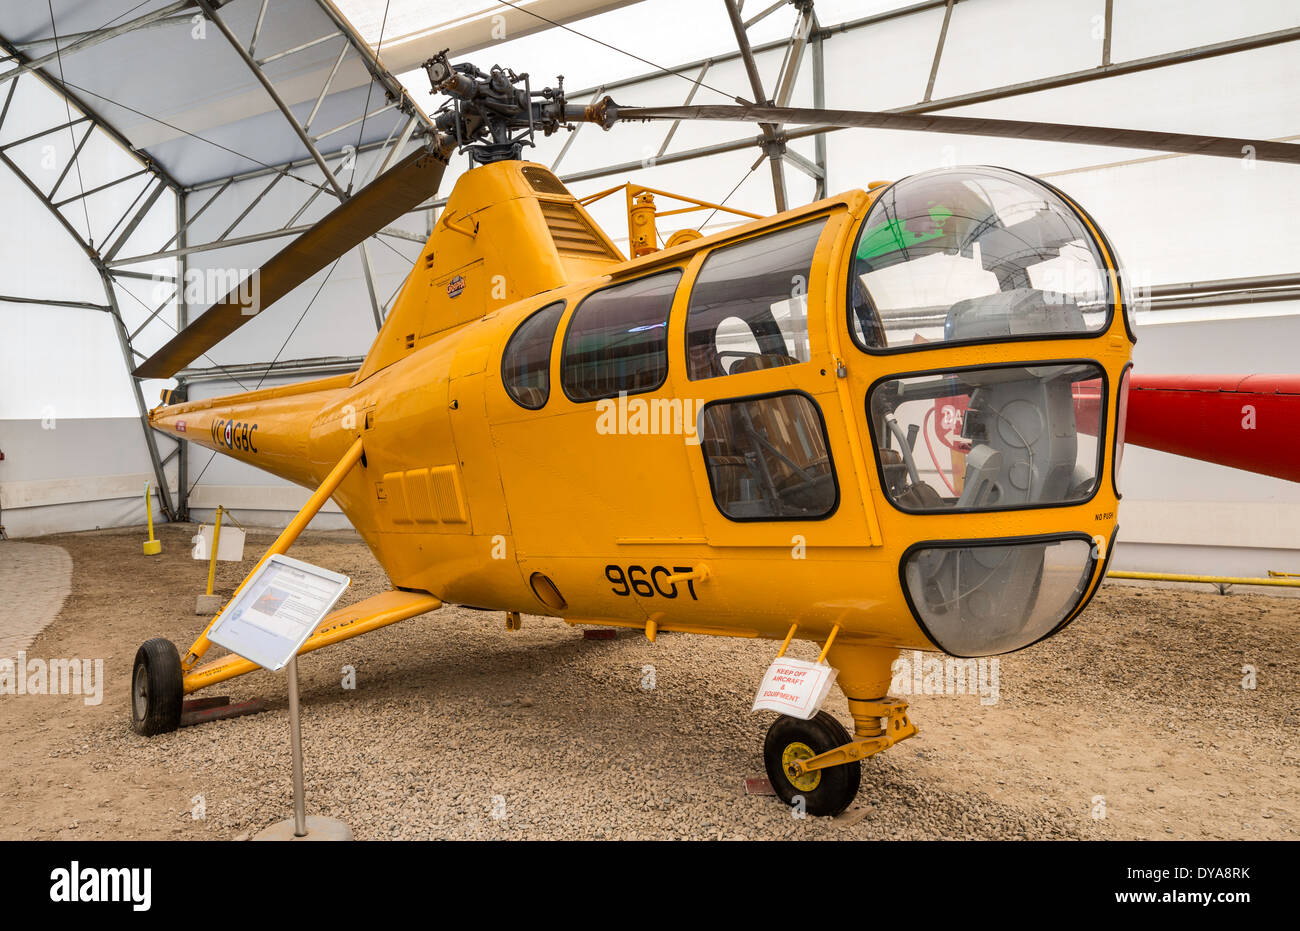 Sikorsky S-51 Dragonfly (H-5) helicopter, Tent Hangar at Aero Space Museum of Calgary, Calgary, Alberta, Canada - Stock Image